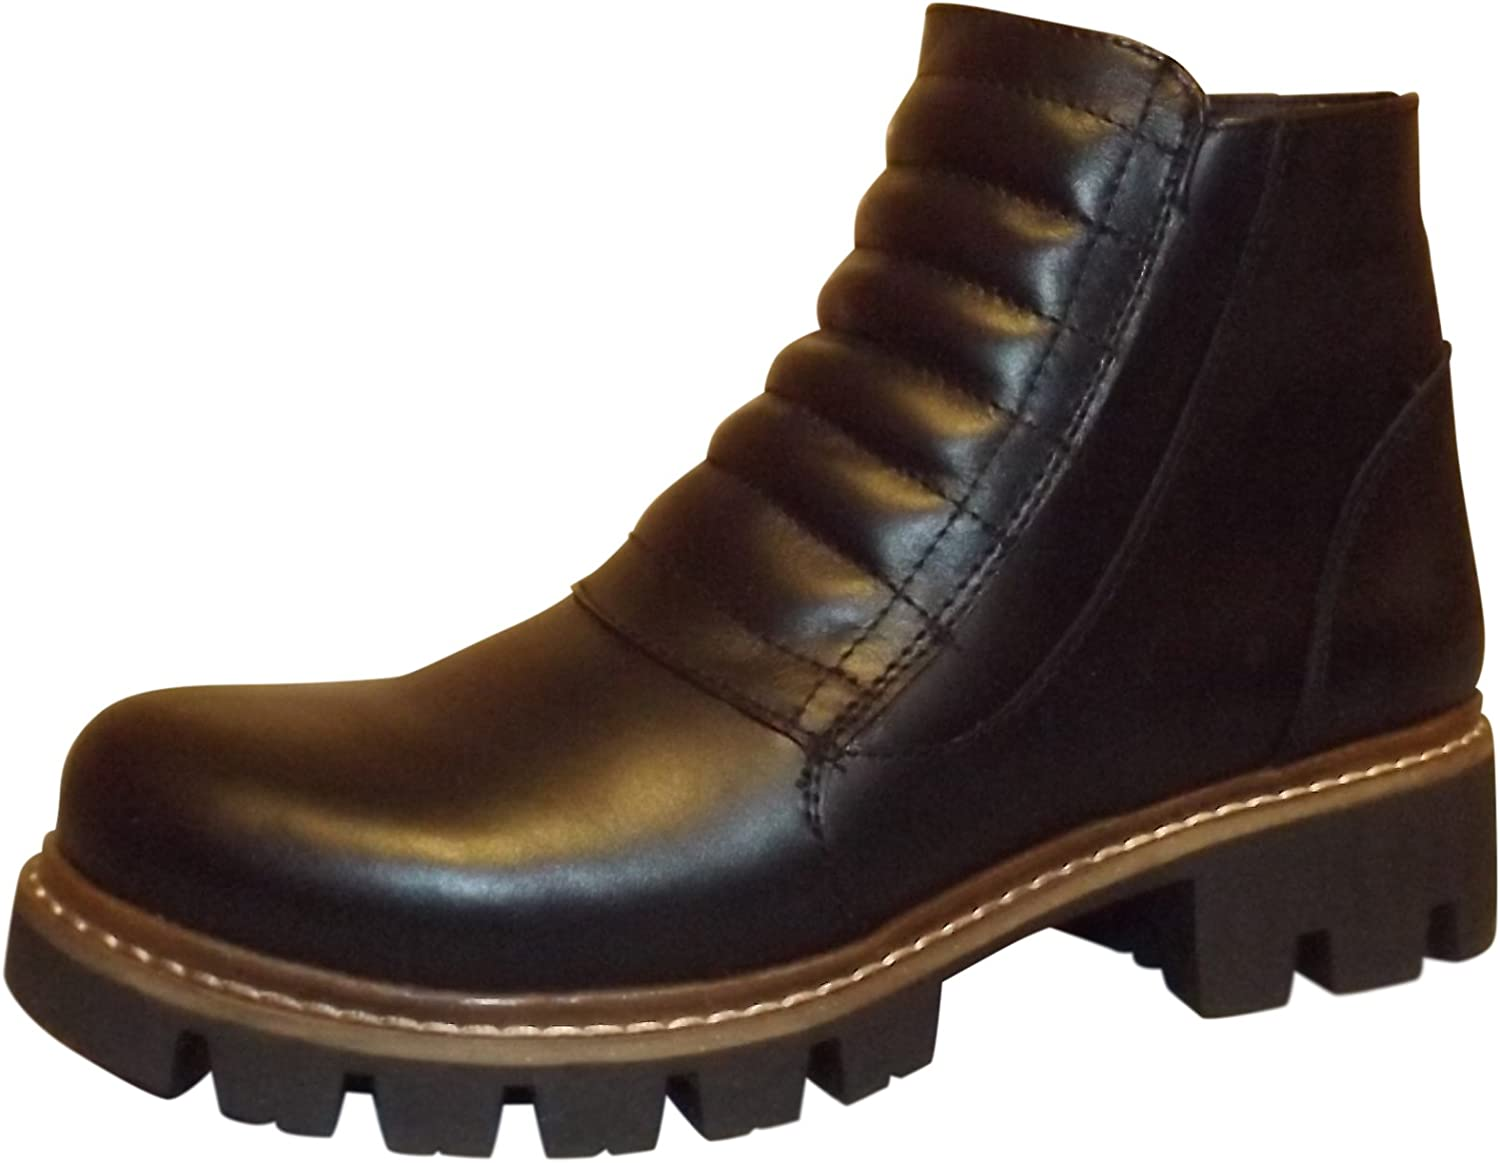 Rocomfort 100% Genuine Leather Women Ankle Winter Boots Black